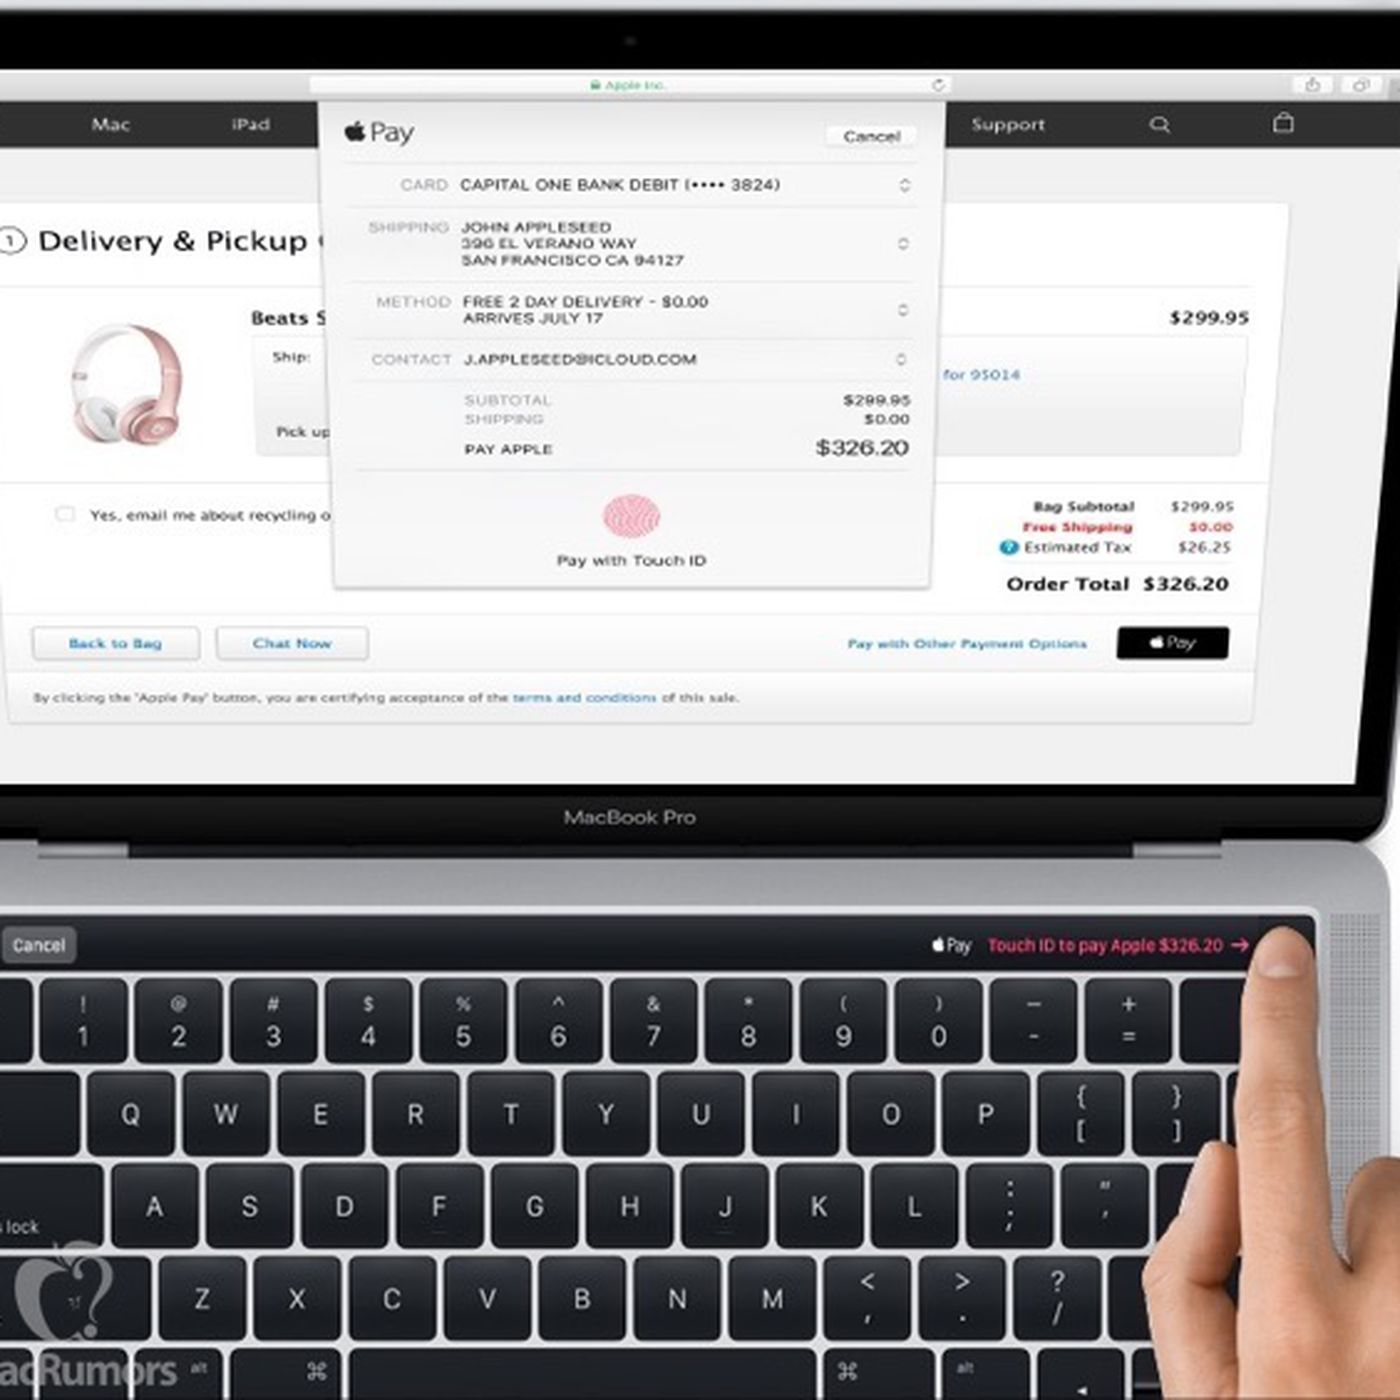 This leaked MacBook Pro image shows Apple Pay in action on a